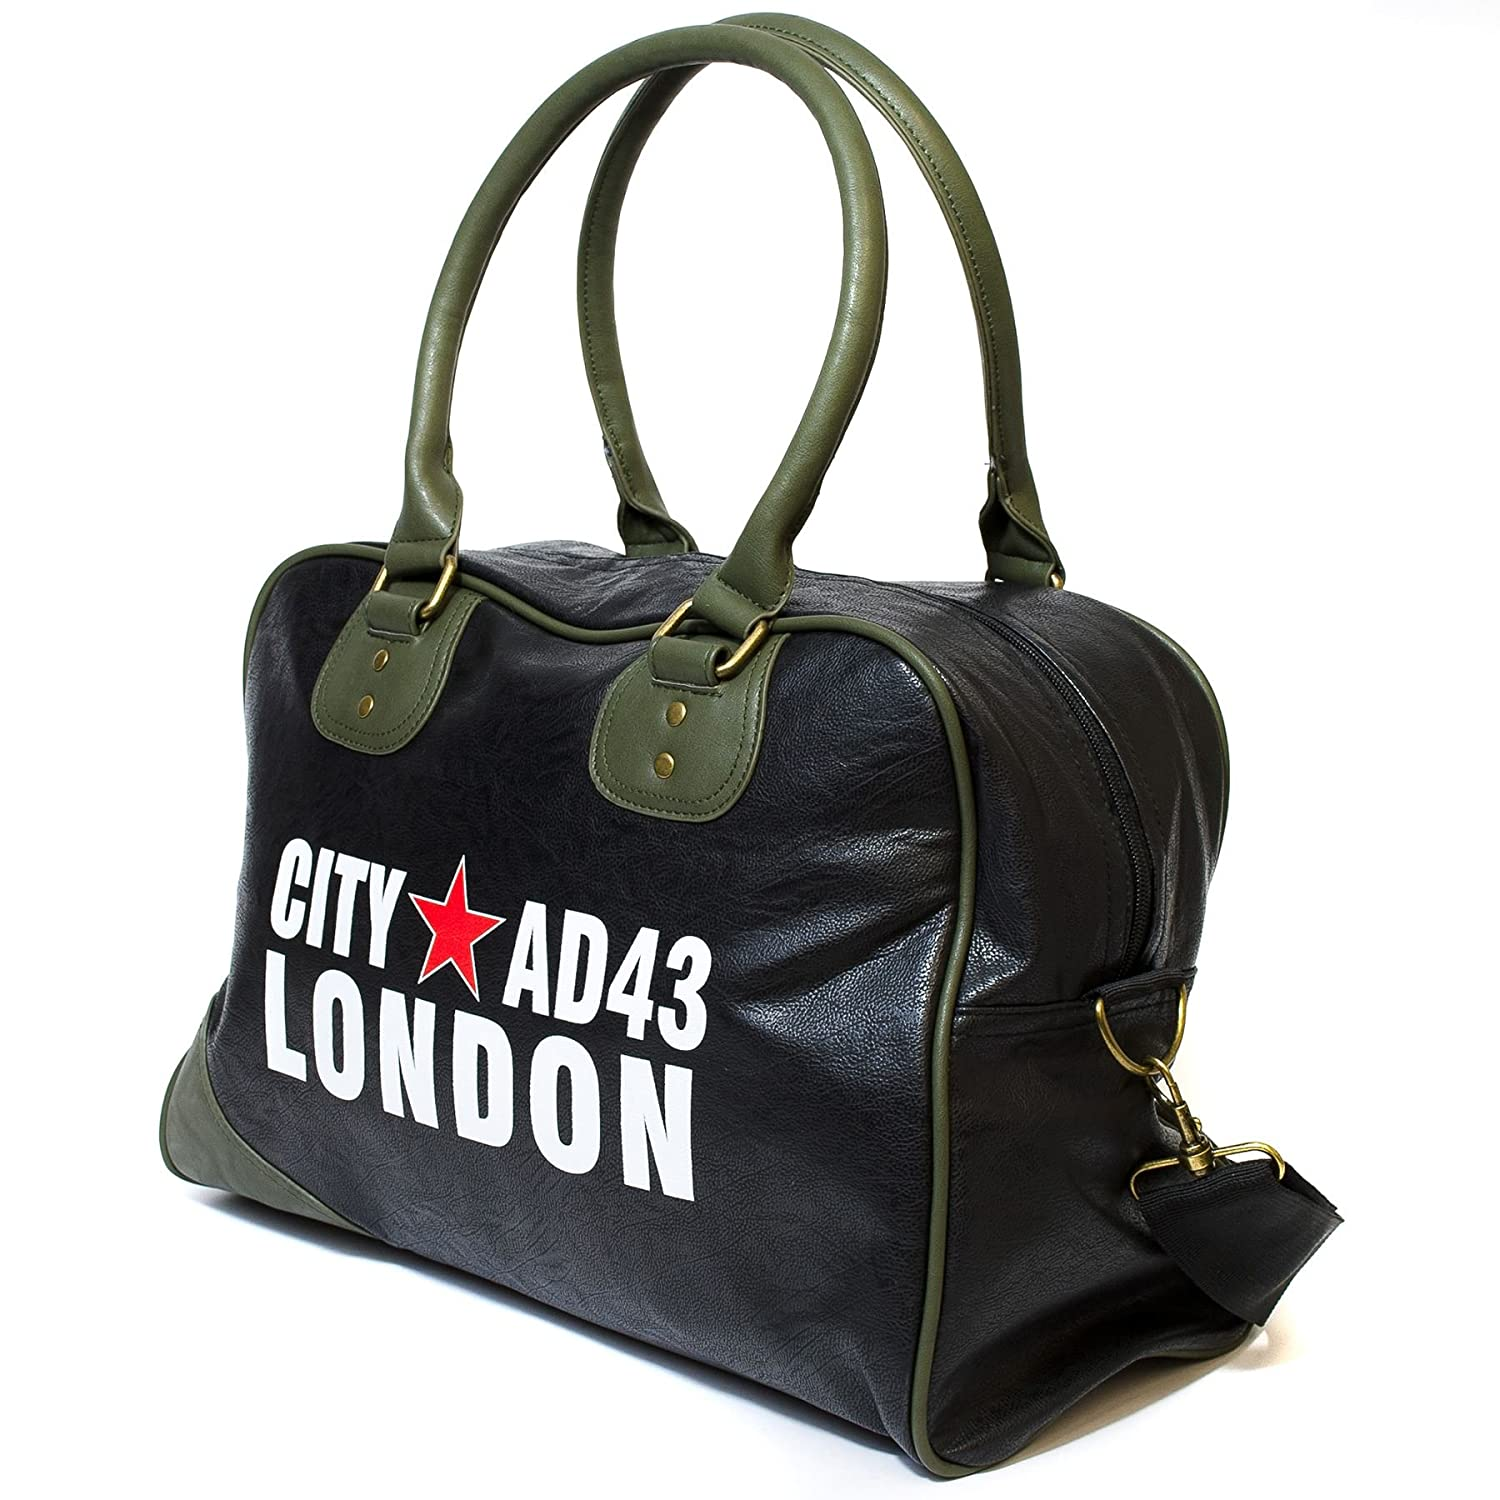 noir Sac bowling Londres City AD43